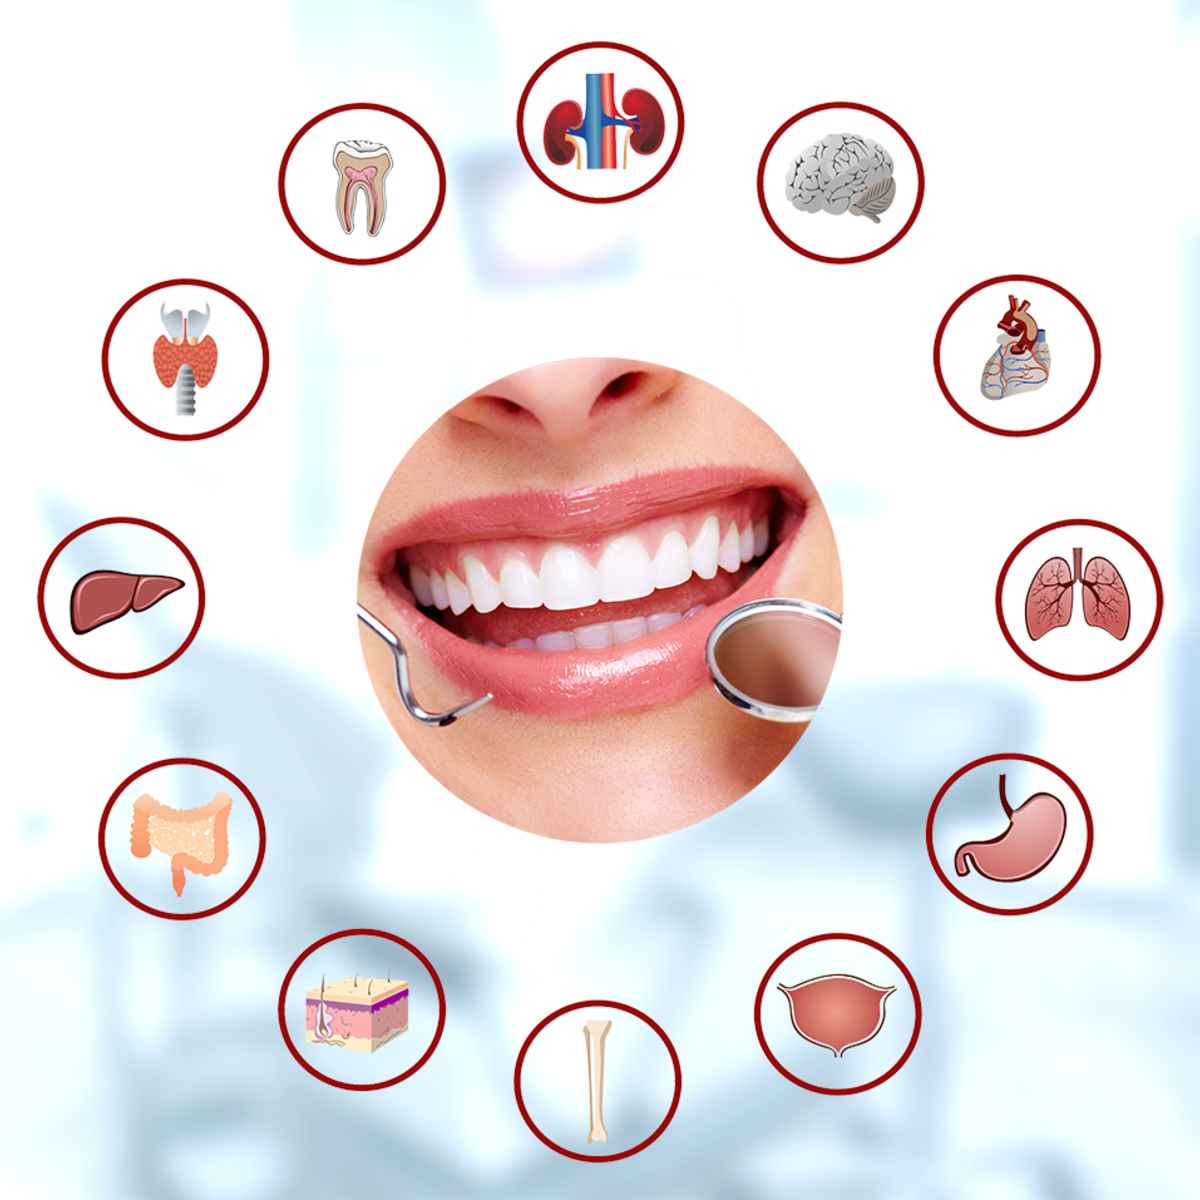 What you need to know about the care of the oral cavity